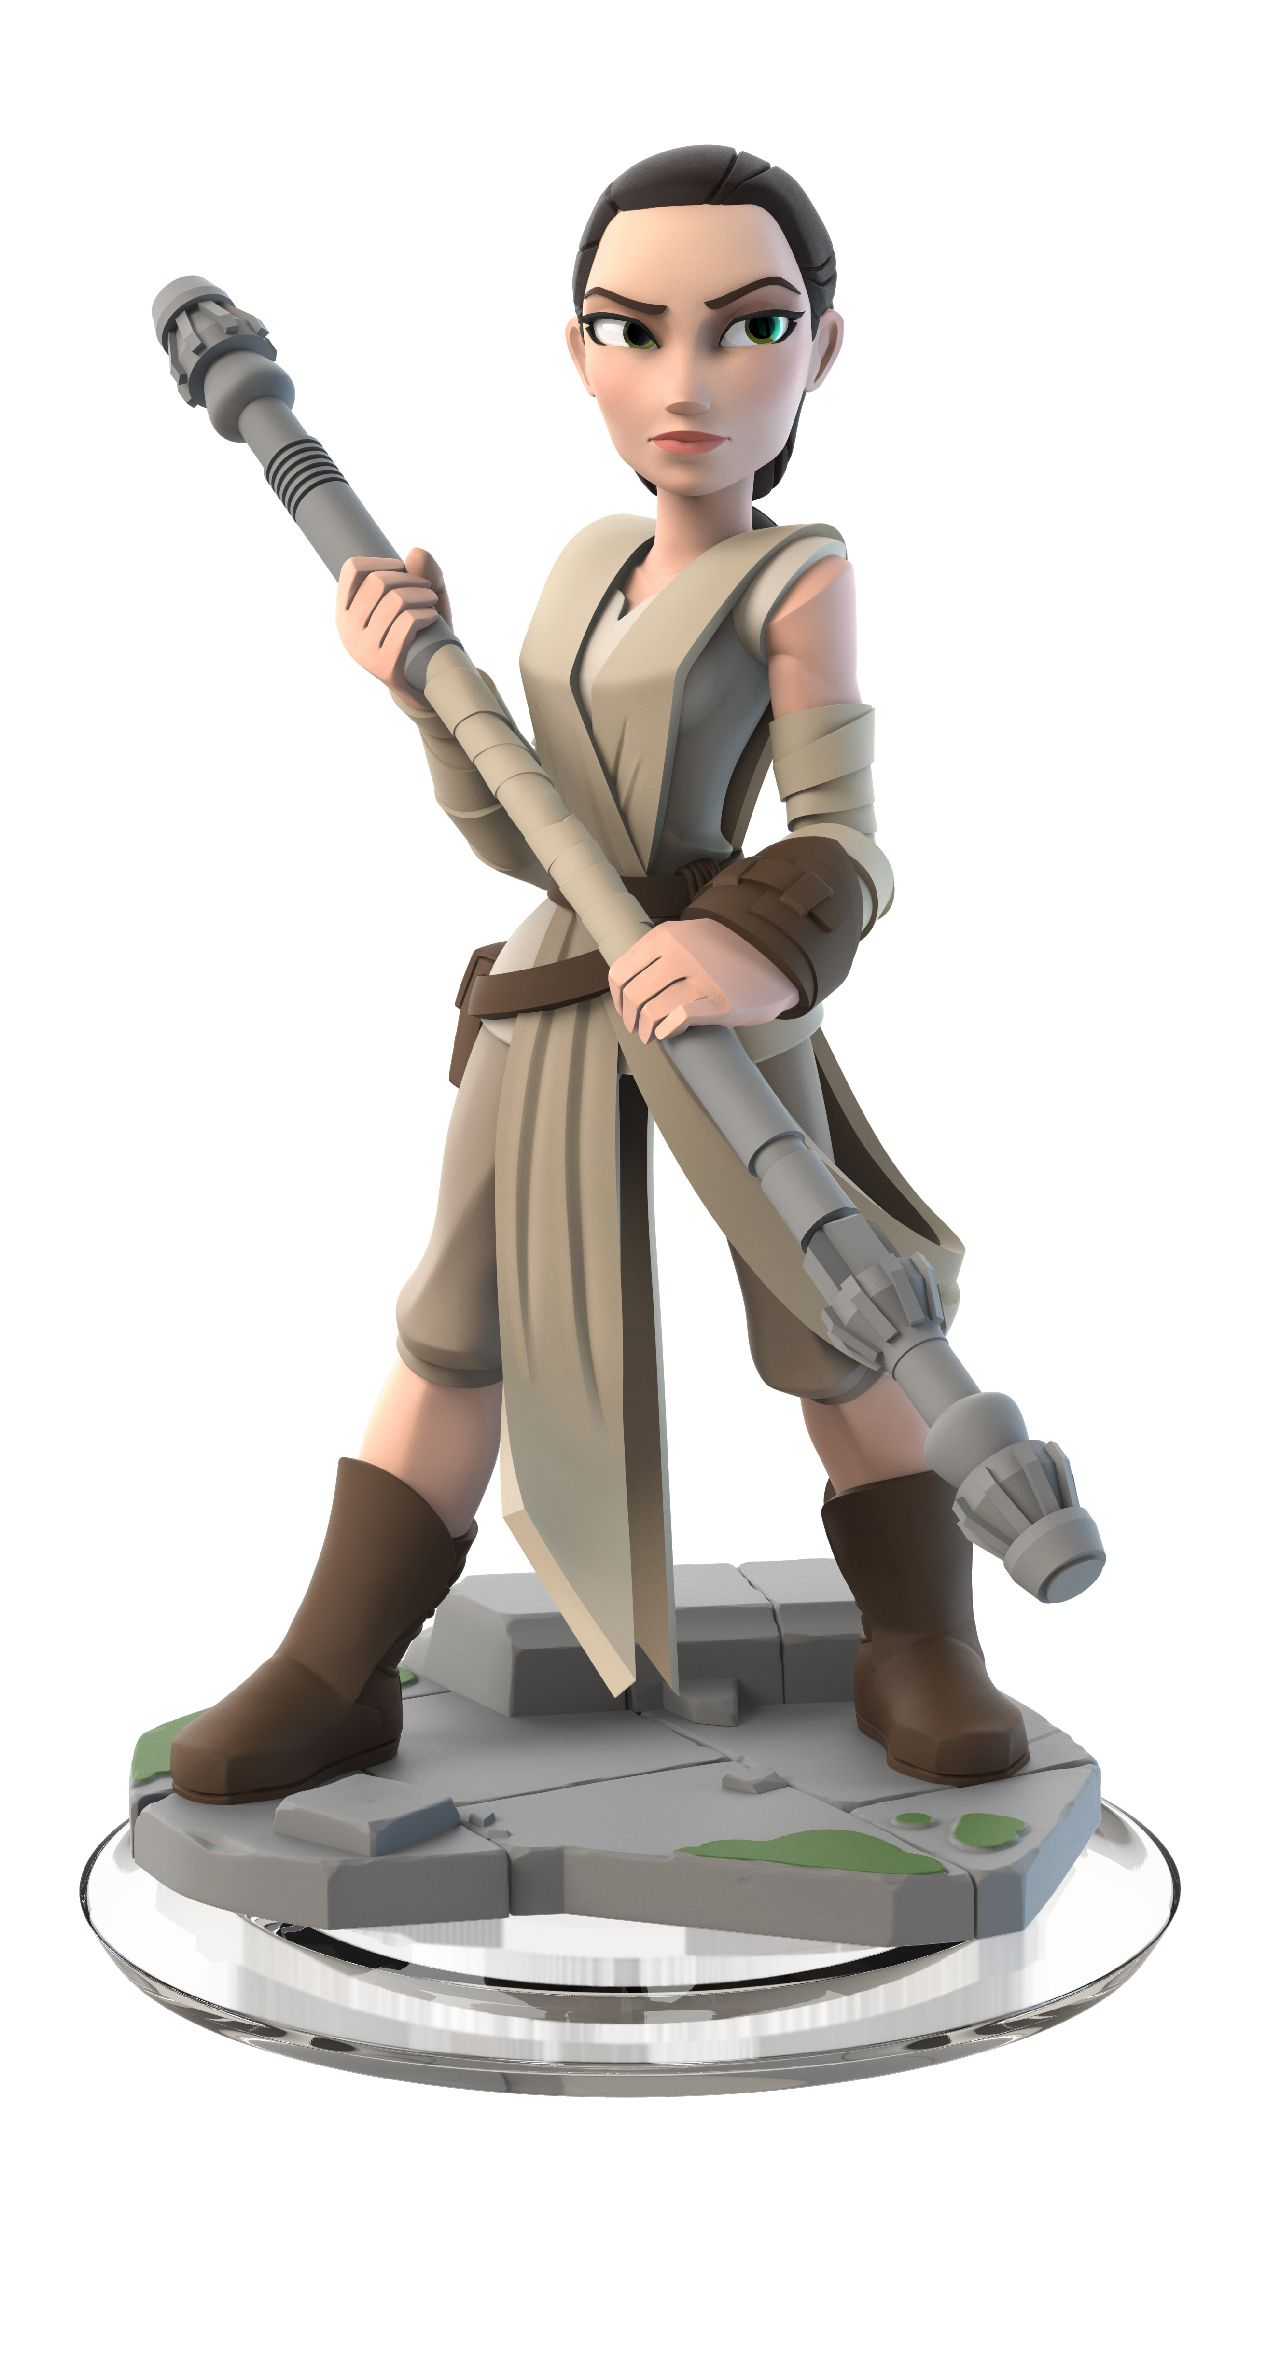 Star Wars: The Force Awakens Rey